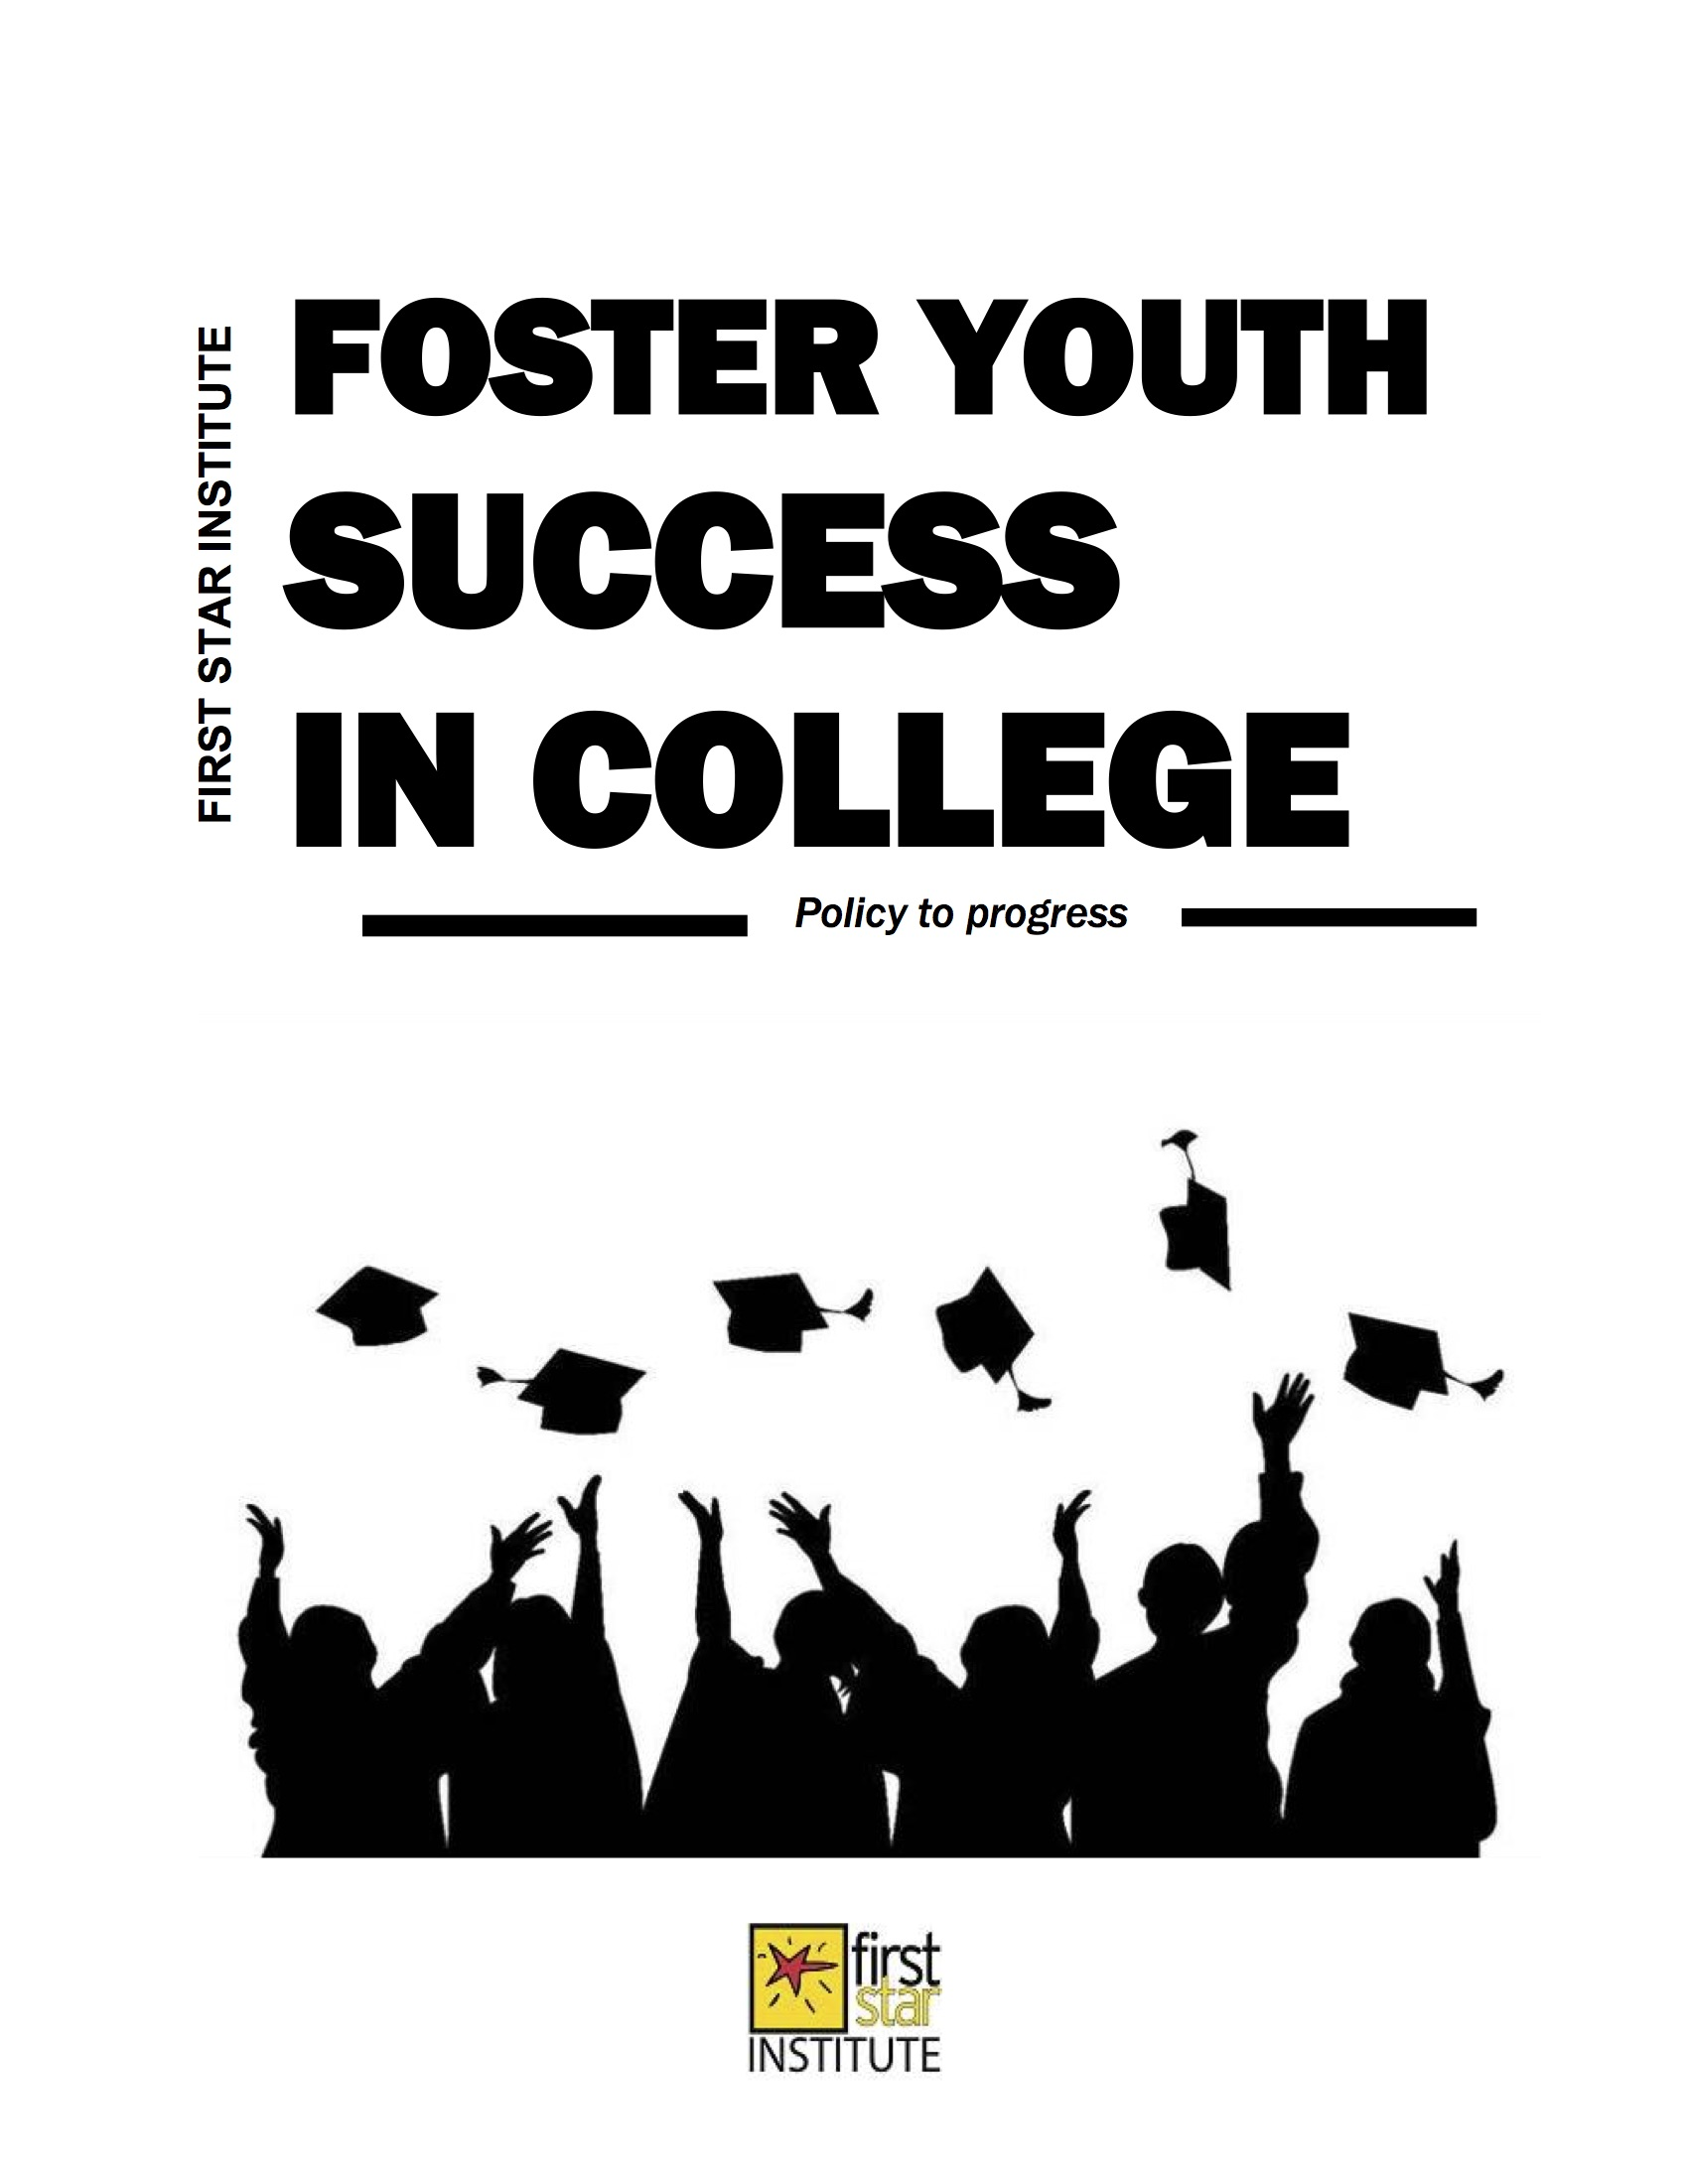 Research and Reports on Child Welfare and Foster Care